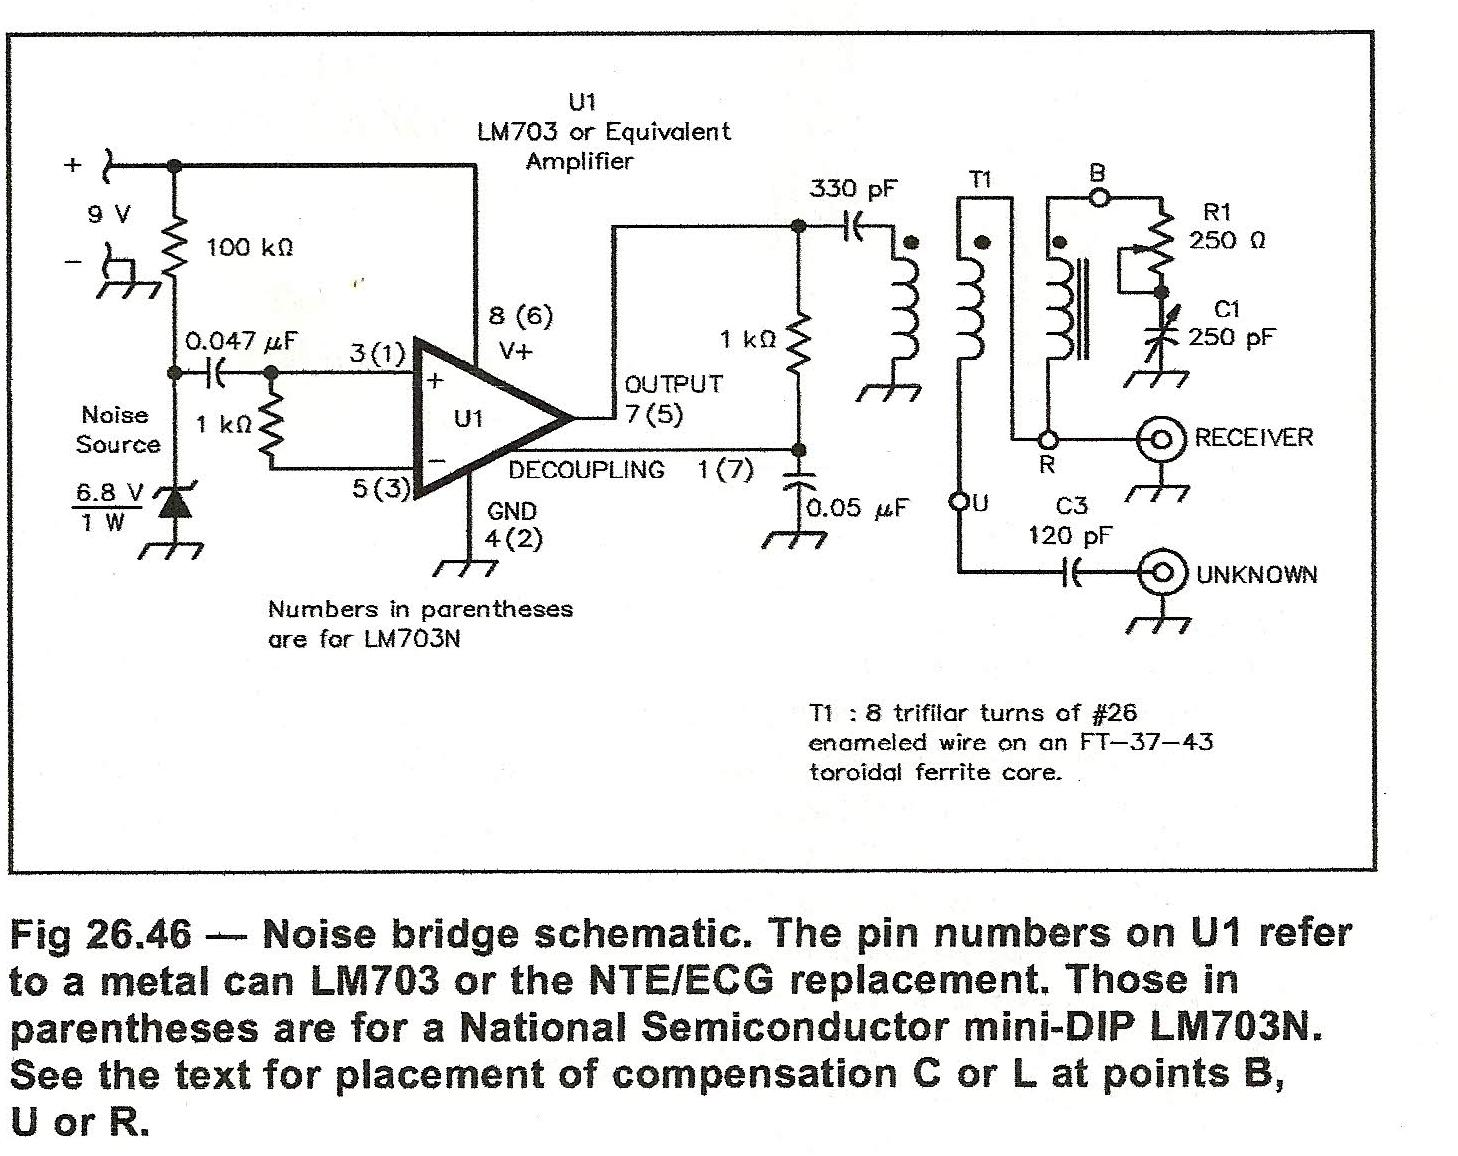 medium resolution of for those who like to homebrew and need detailed build instructions as i do i have attached a noise bridge from test equipment by clive smith g4fzh using